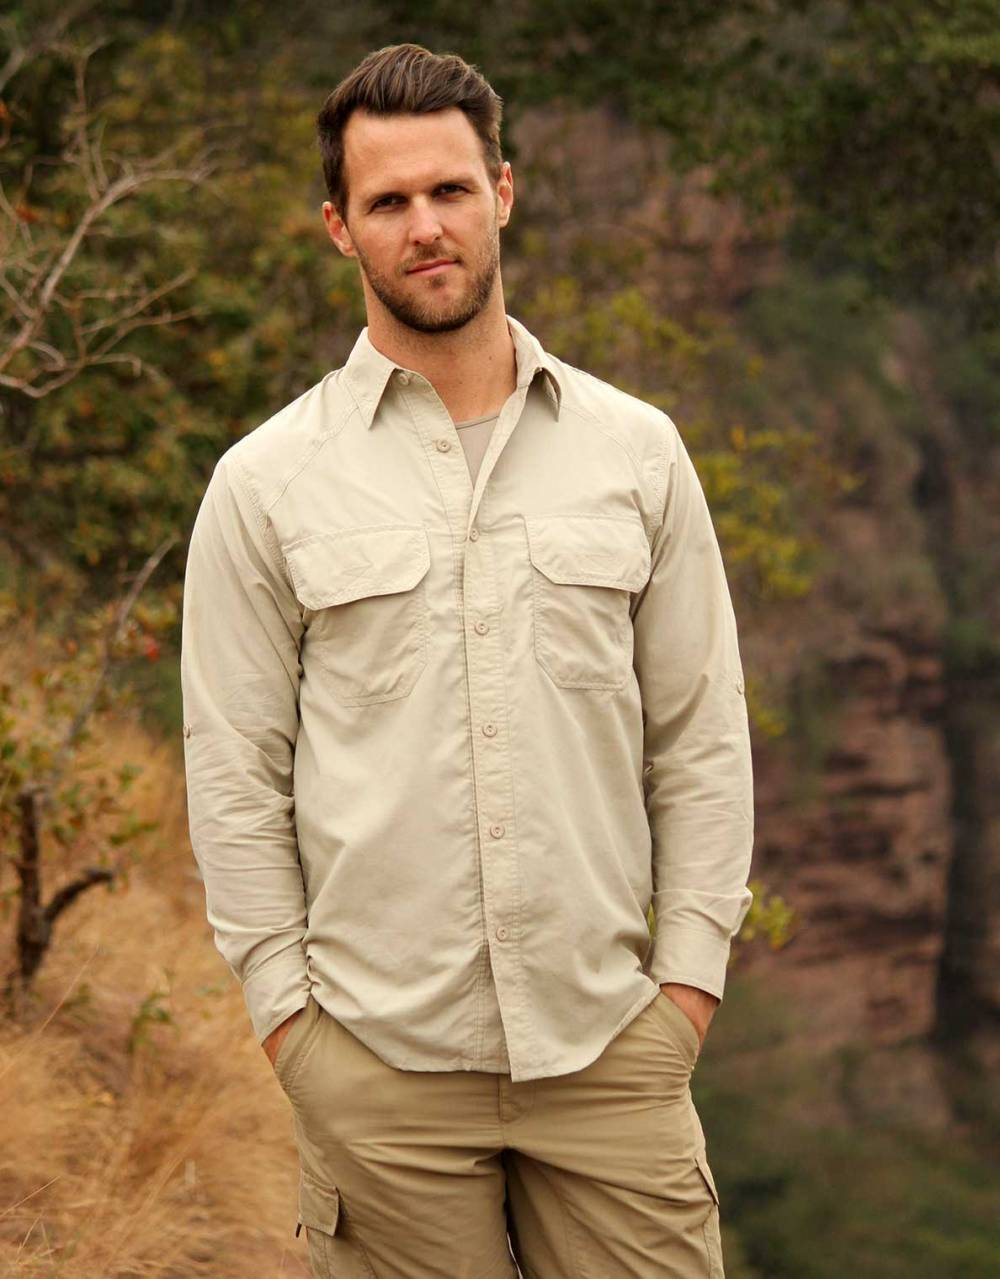 Since time immemorial men have been known as the more adventurous sex. Whether that is true is a discussion for another day. Today we discuss men and safaris and what they should pack and wear on the ultimate adventure- a safari in Africa!